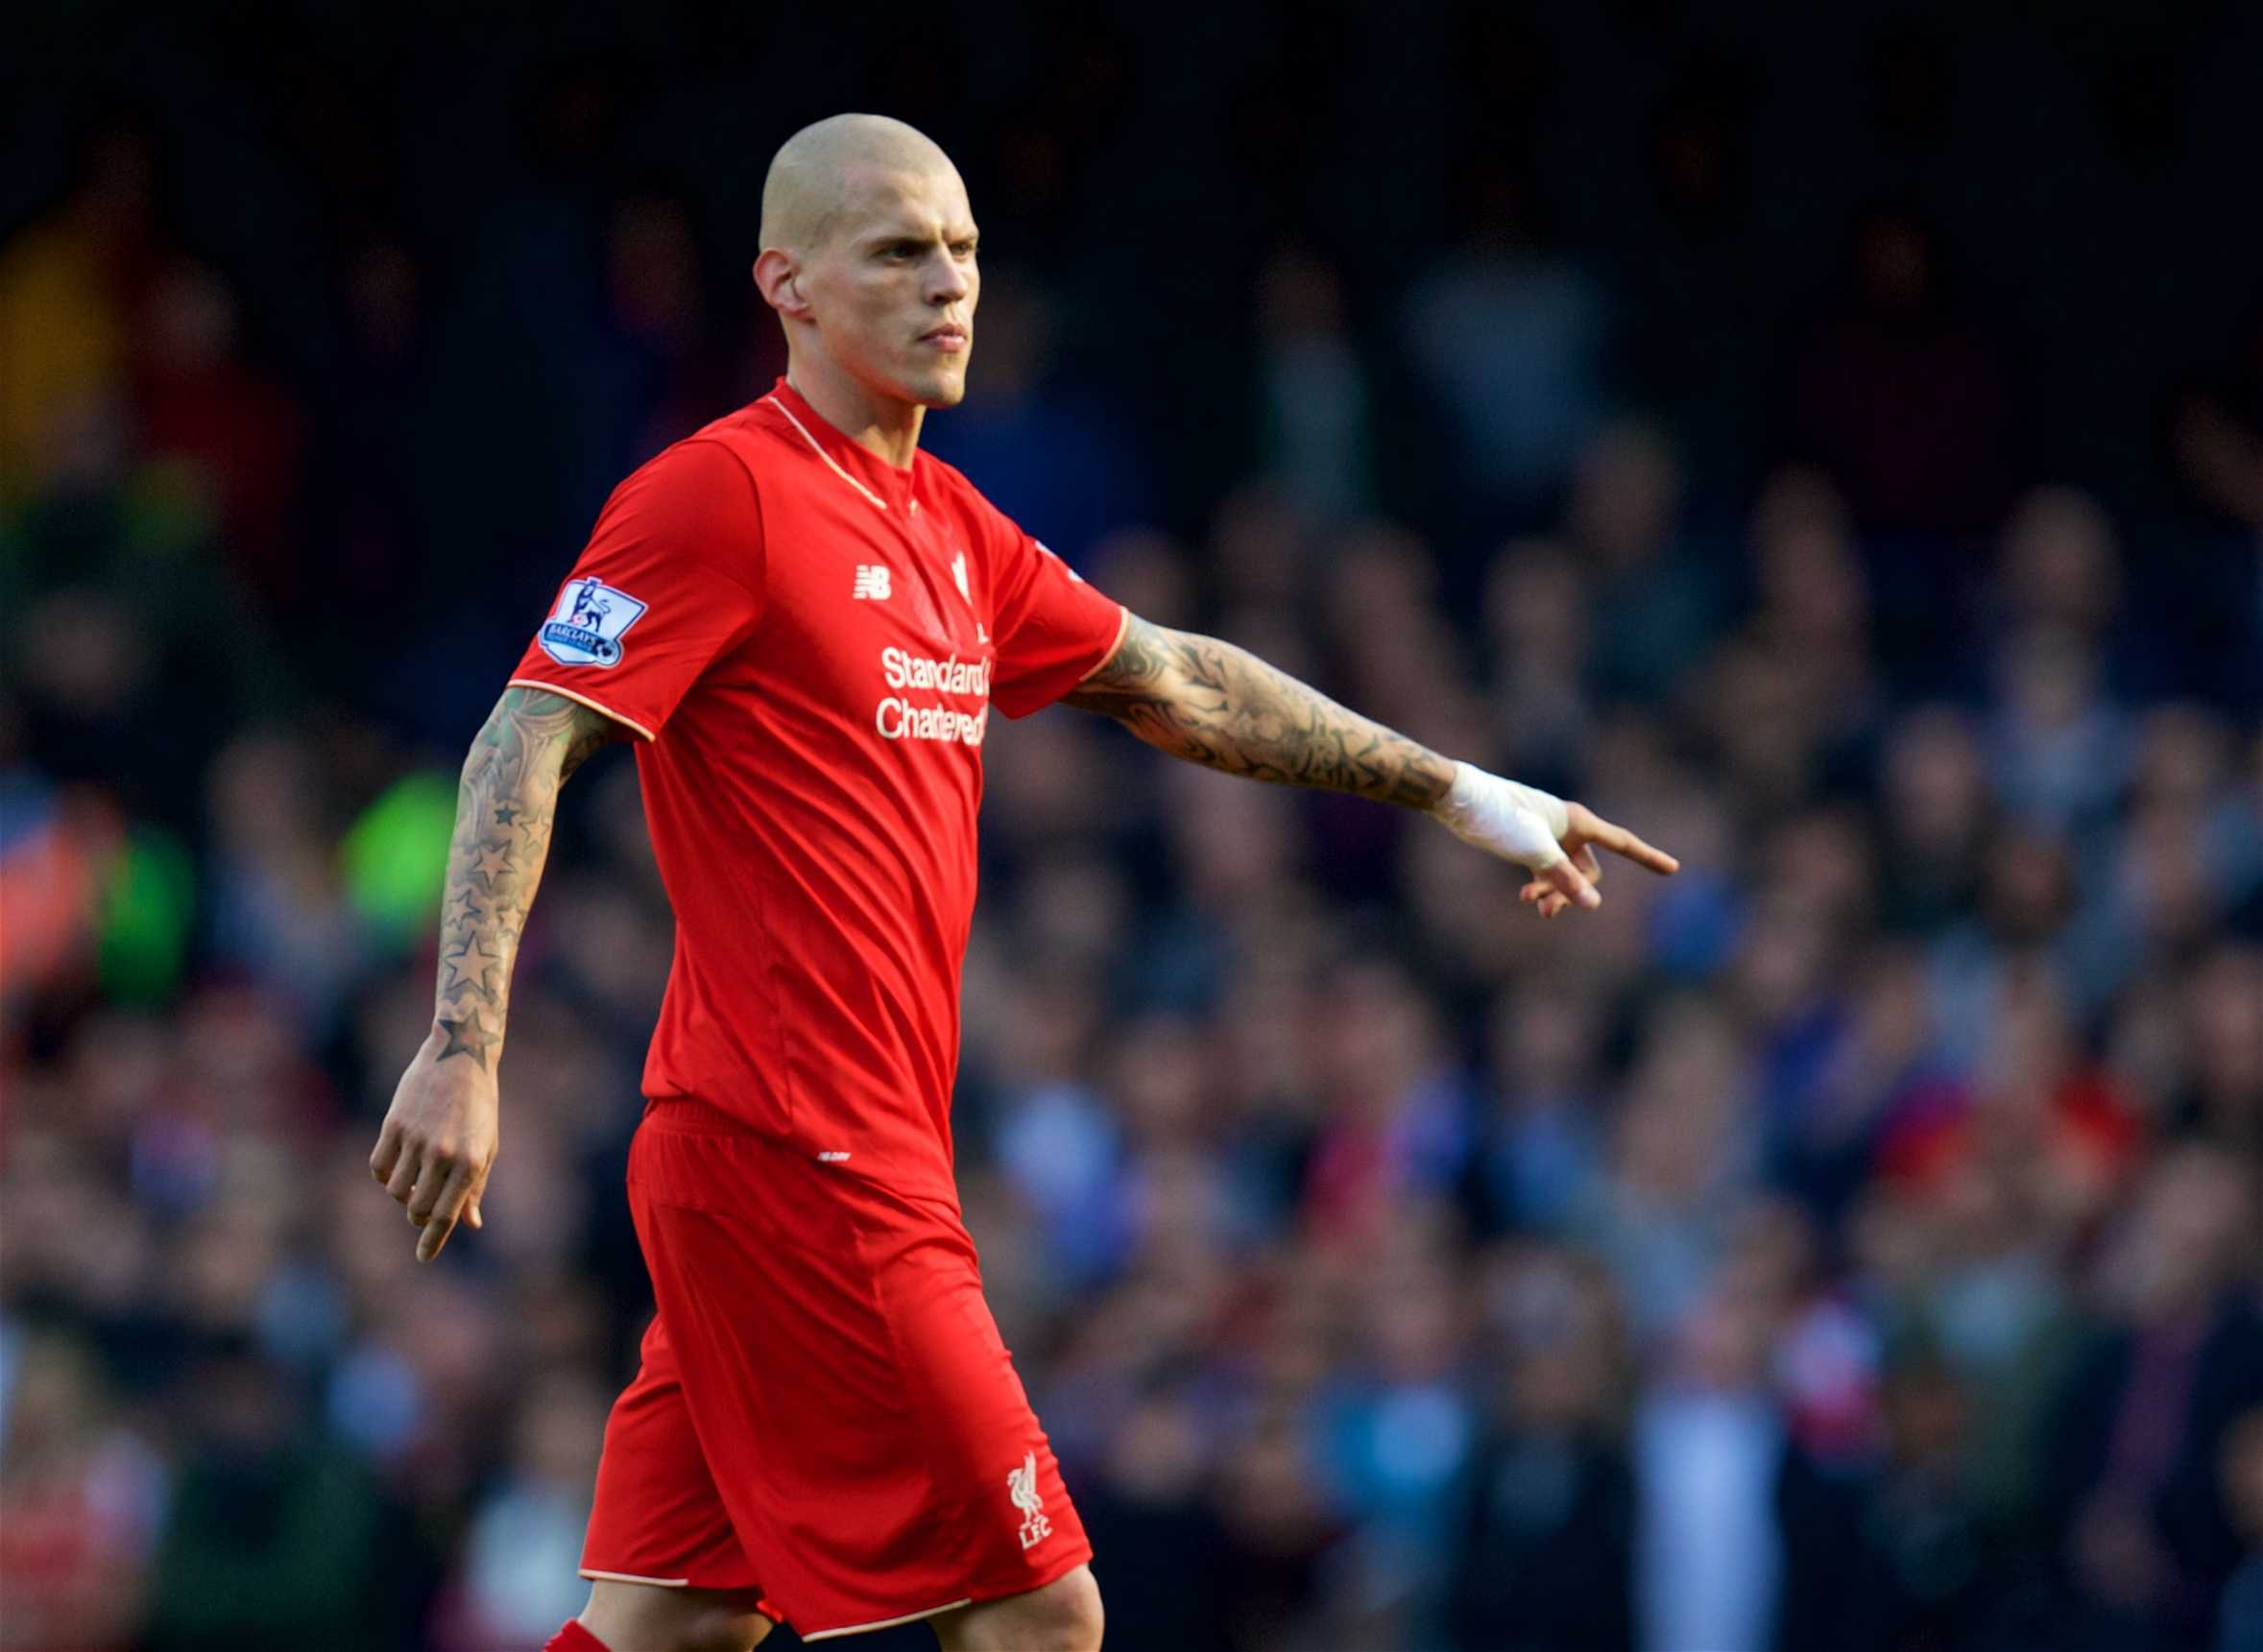 LONDON, ENGLAND - Saturday, October 31, 2015: Liverpool's Martin Skrtel in action against Chelsea during the Premier League match at Stamford Bridge. (Pic by David Rawcliffe/Propaganda)